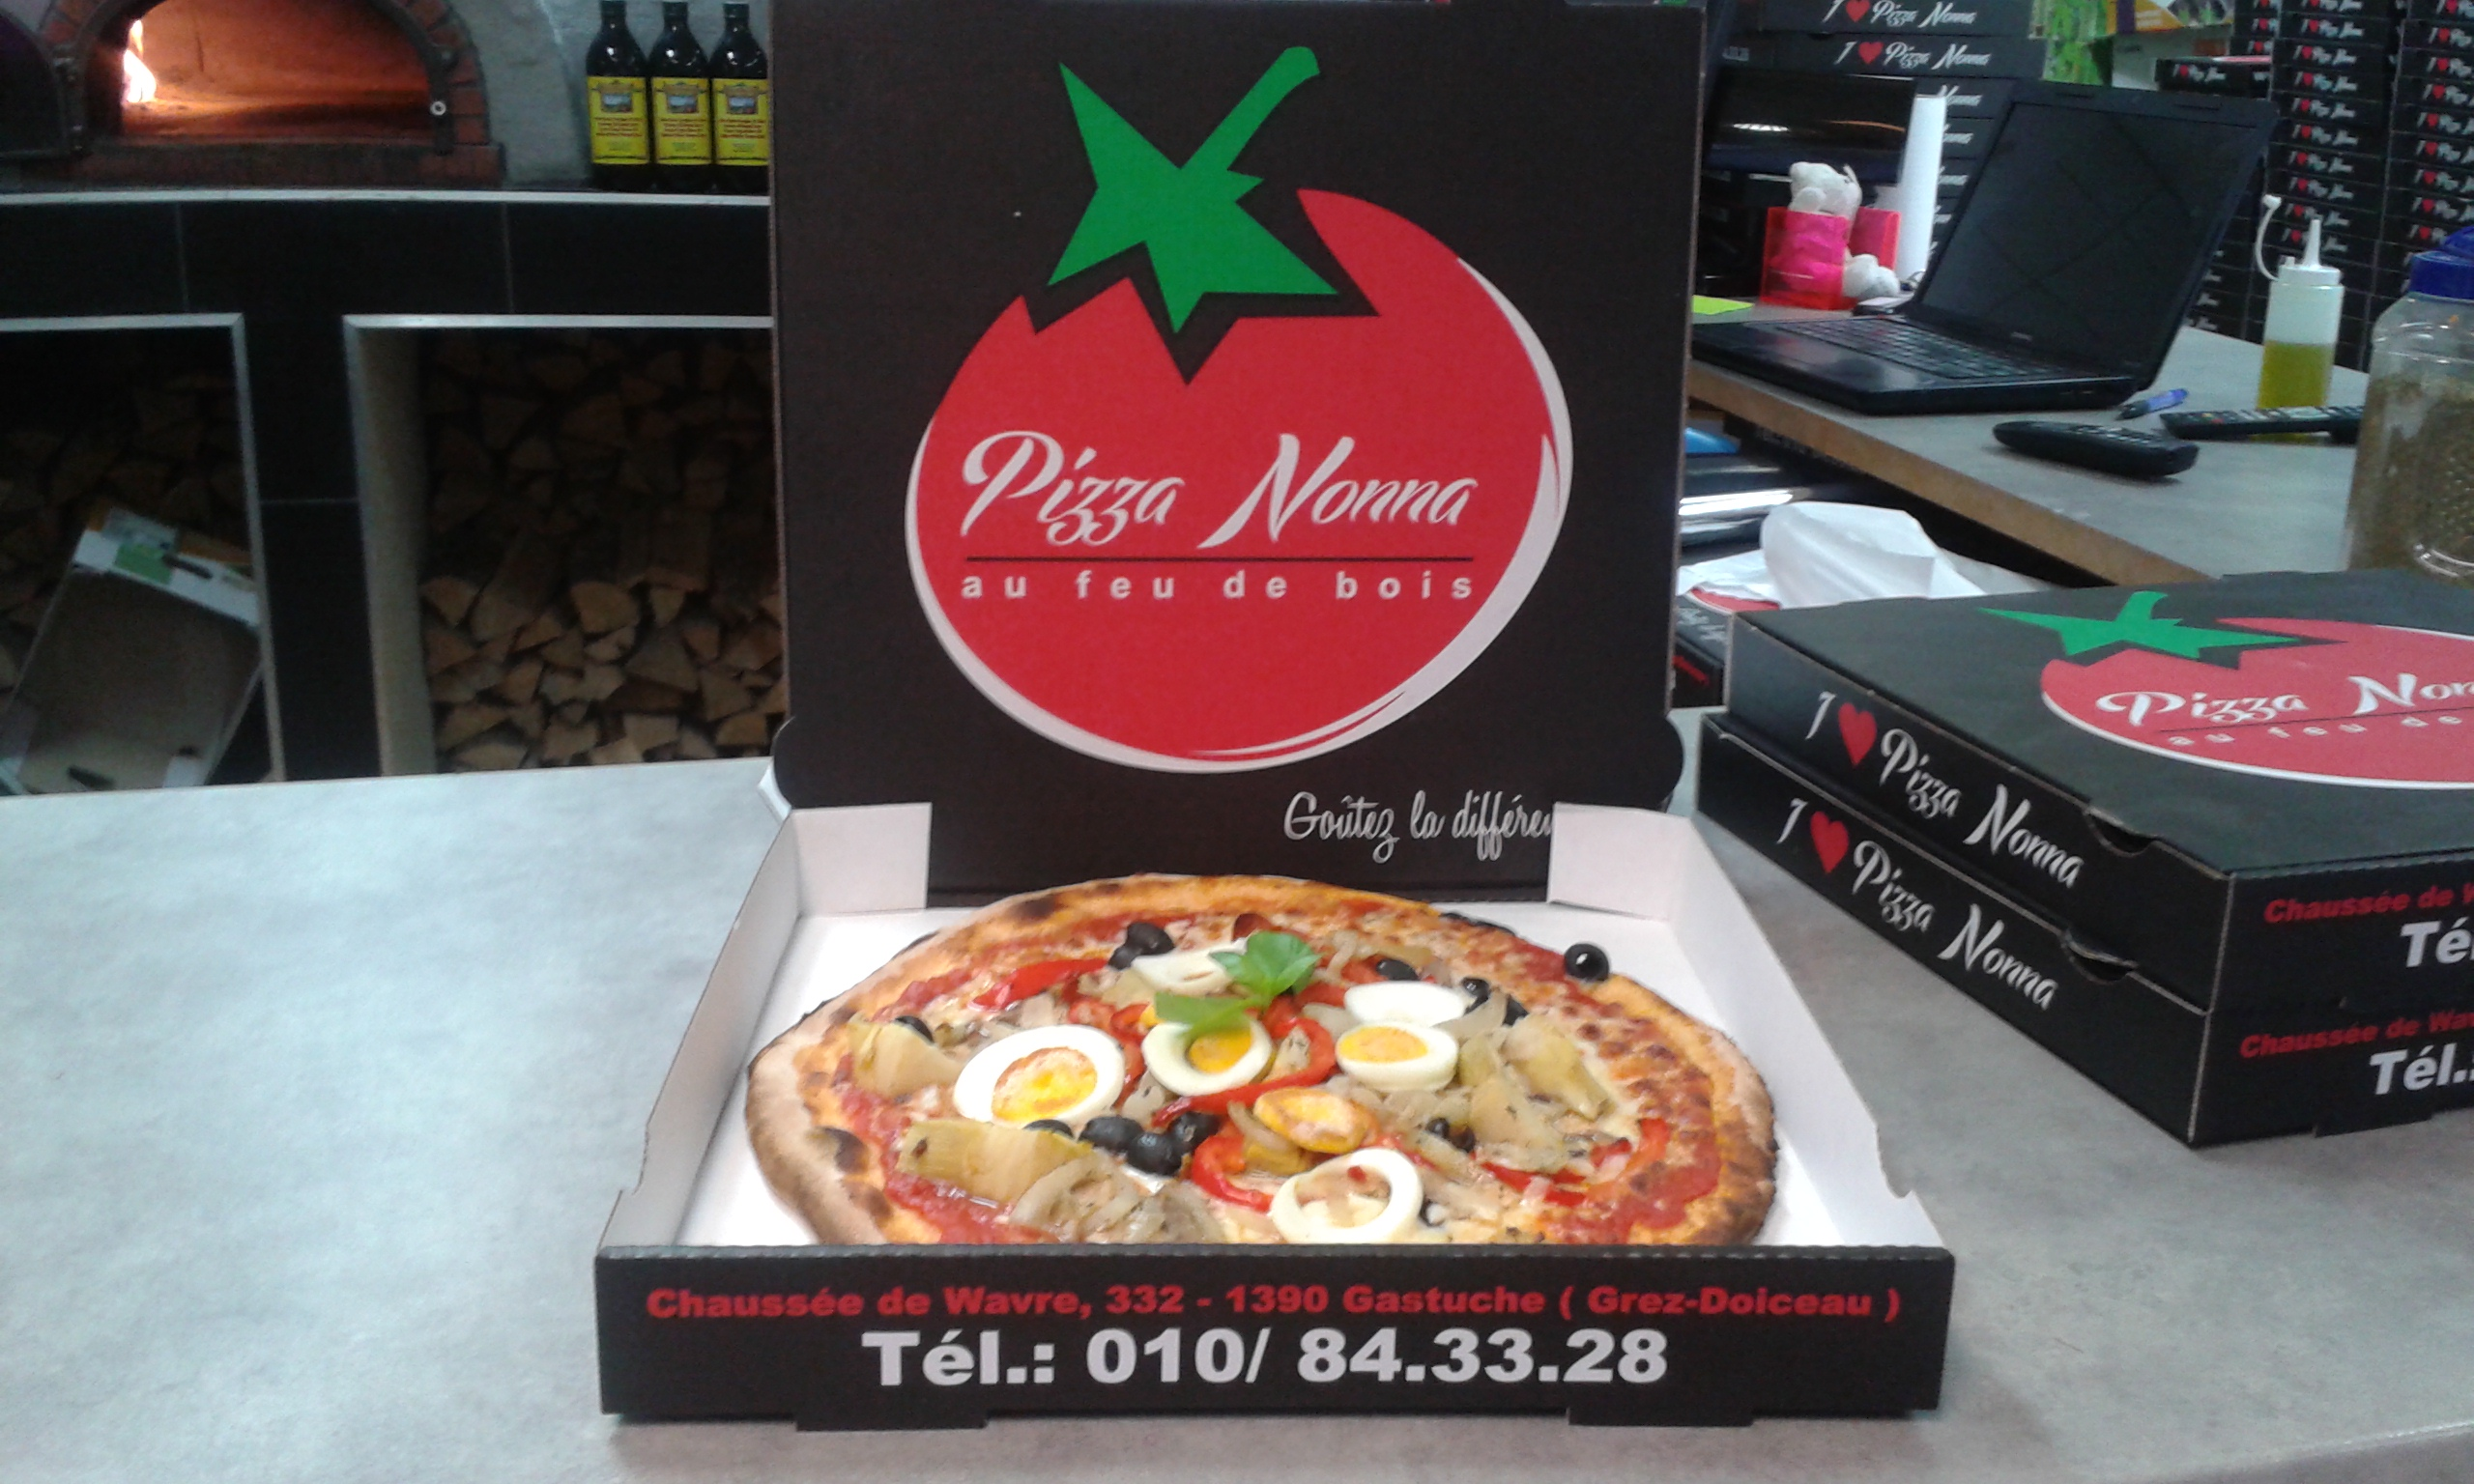 pizza nonna 111 050.jpg